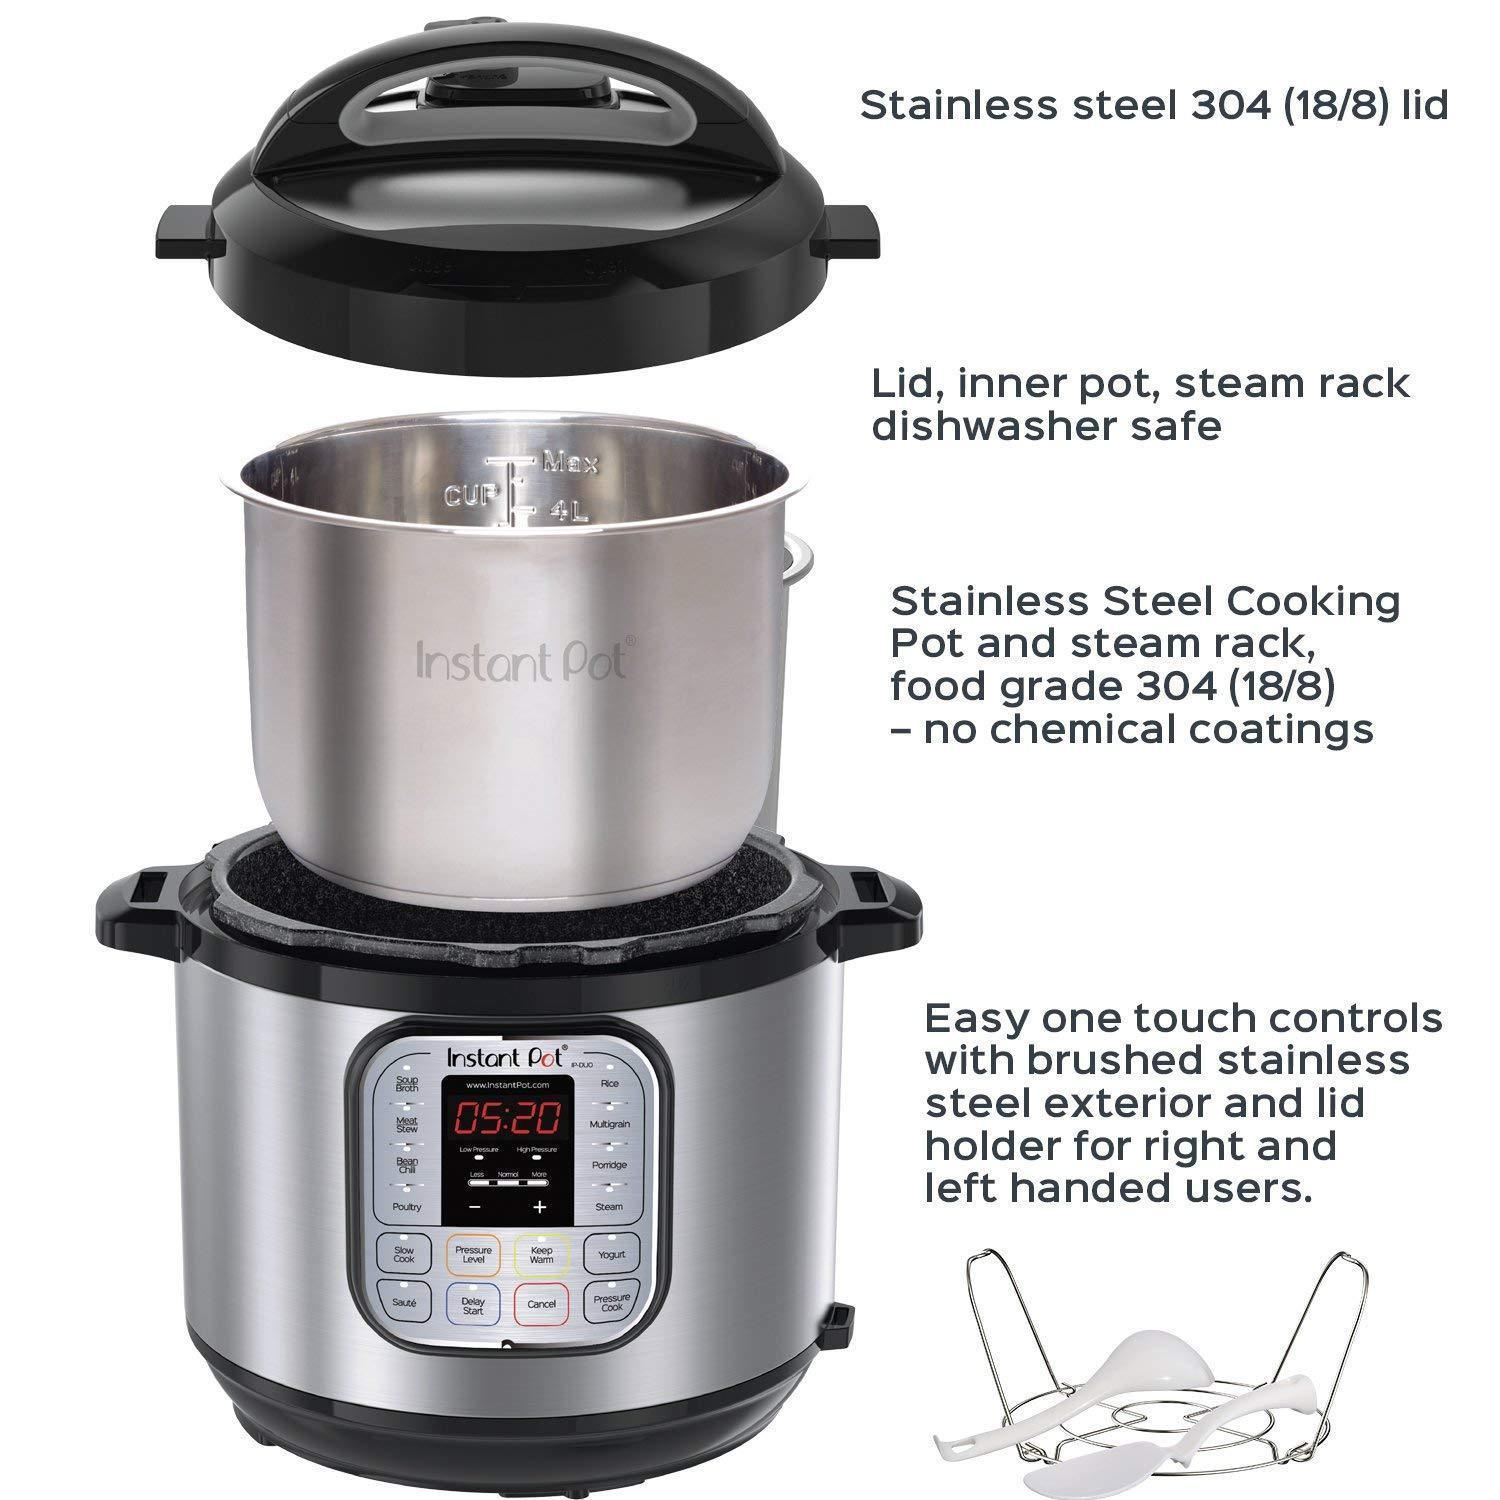 Instant Pot Duo60 V3 6 QT 7-in-1 Multi-use Programmable Pressure Cooker